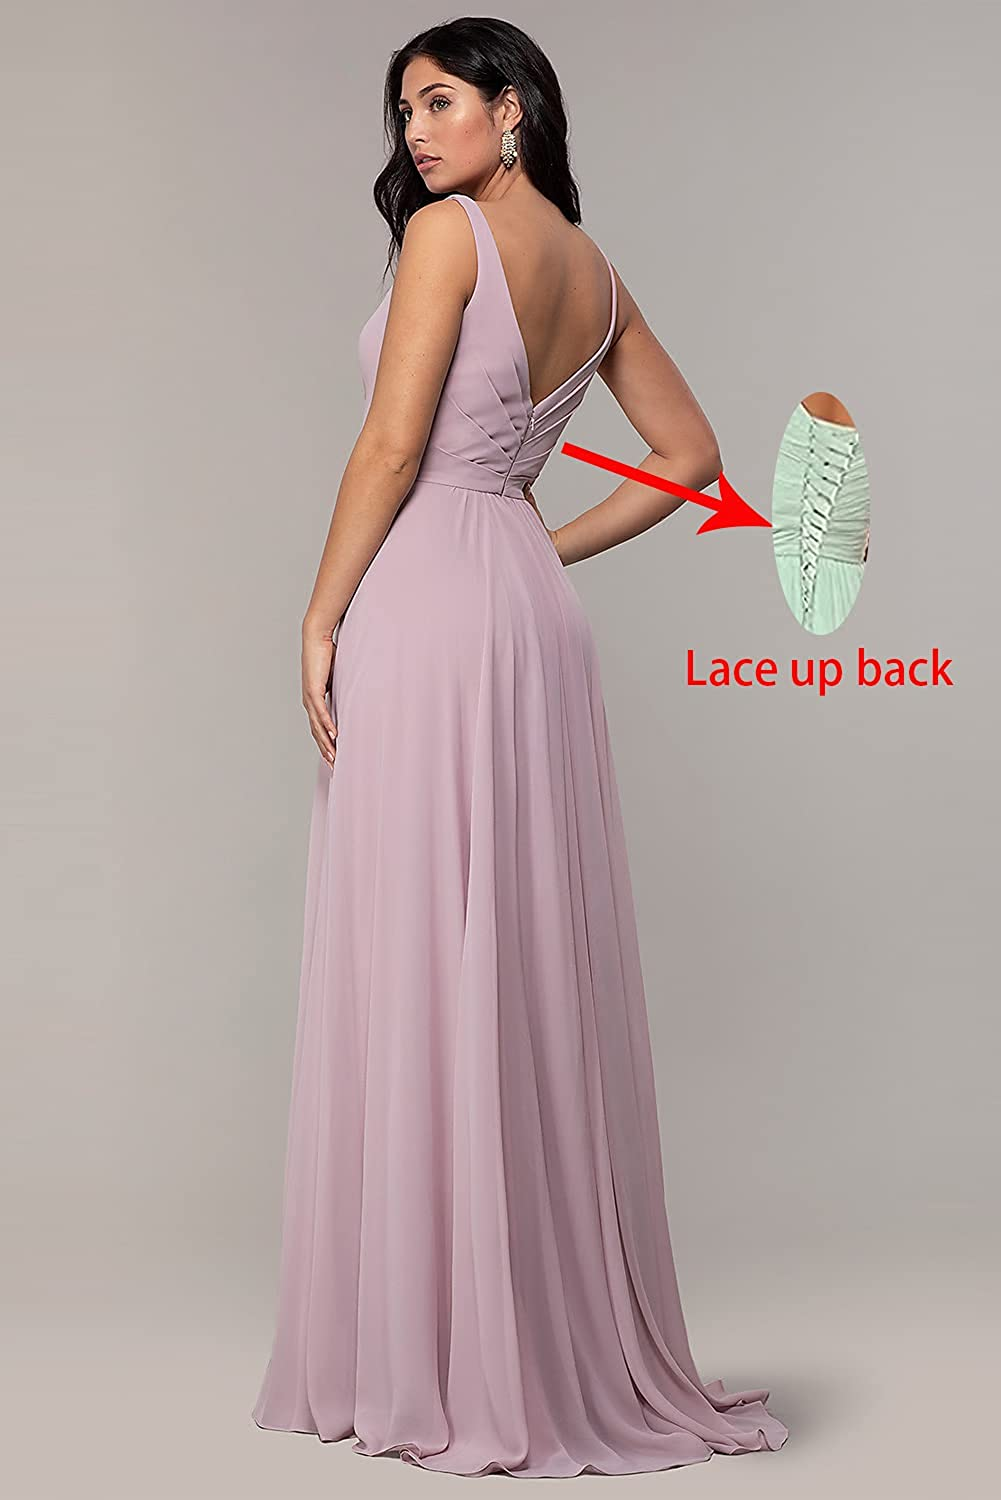 TiznIog Women's V Neck Bridesmaid Dresses with Slit 2021 Long Formal Party Dress for Weddings